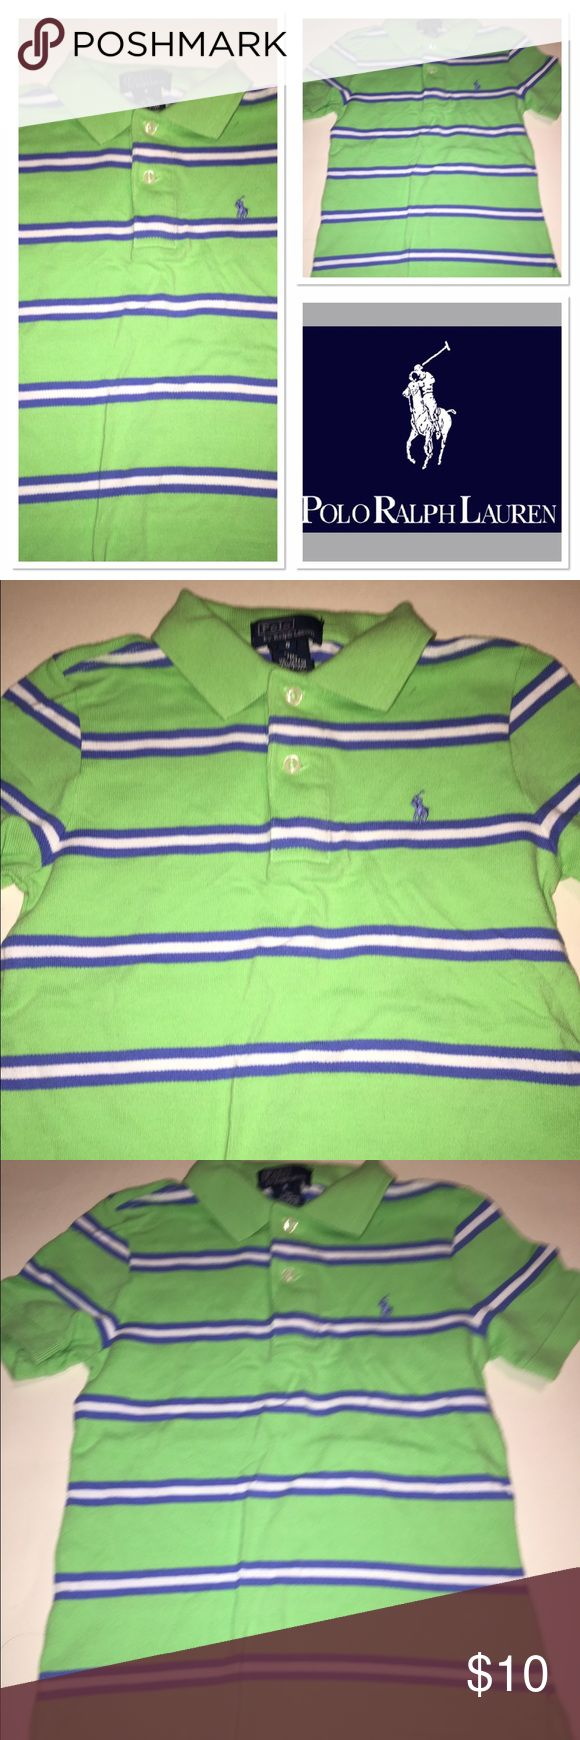 Ralph Lauren green Polo In excellent condition little boys size 5 Polo shirt Polo by Ralph Lauren Shirts & Tops Polos